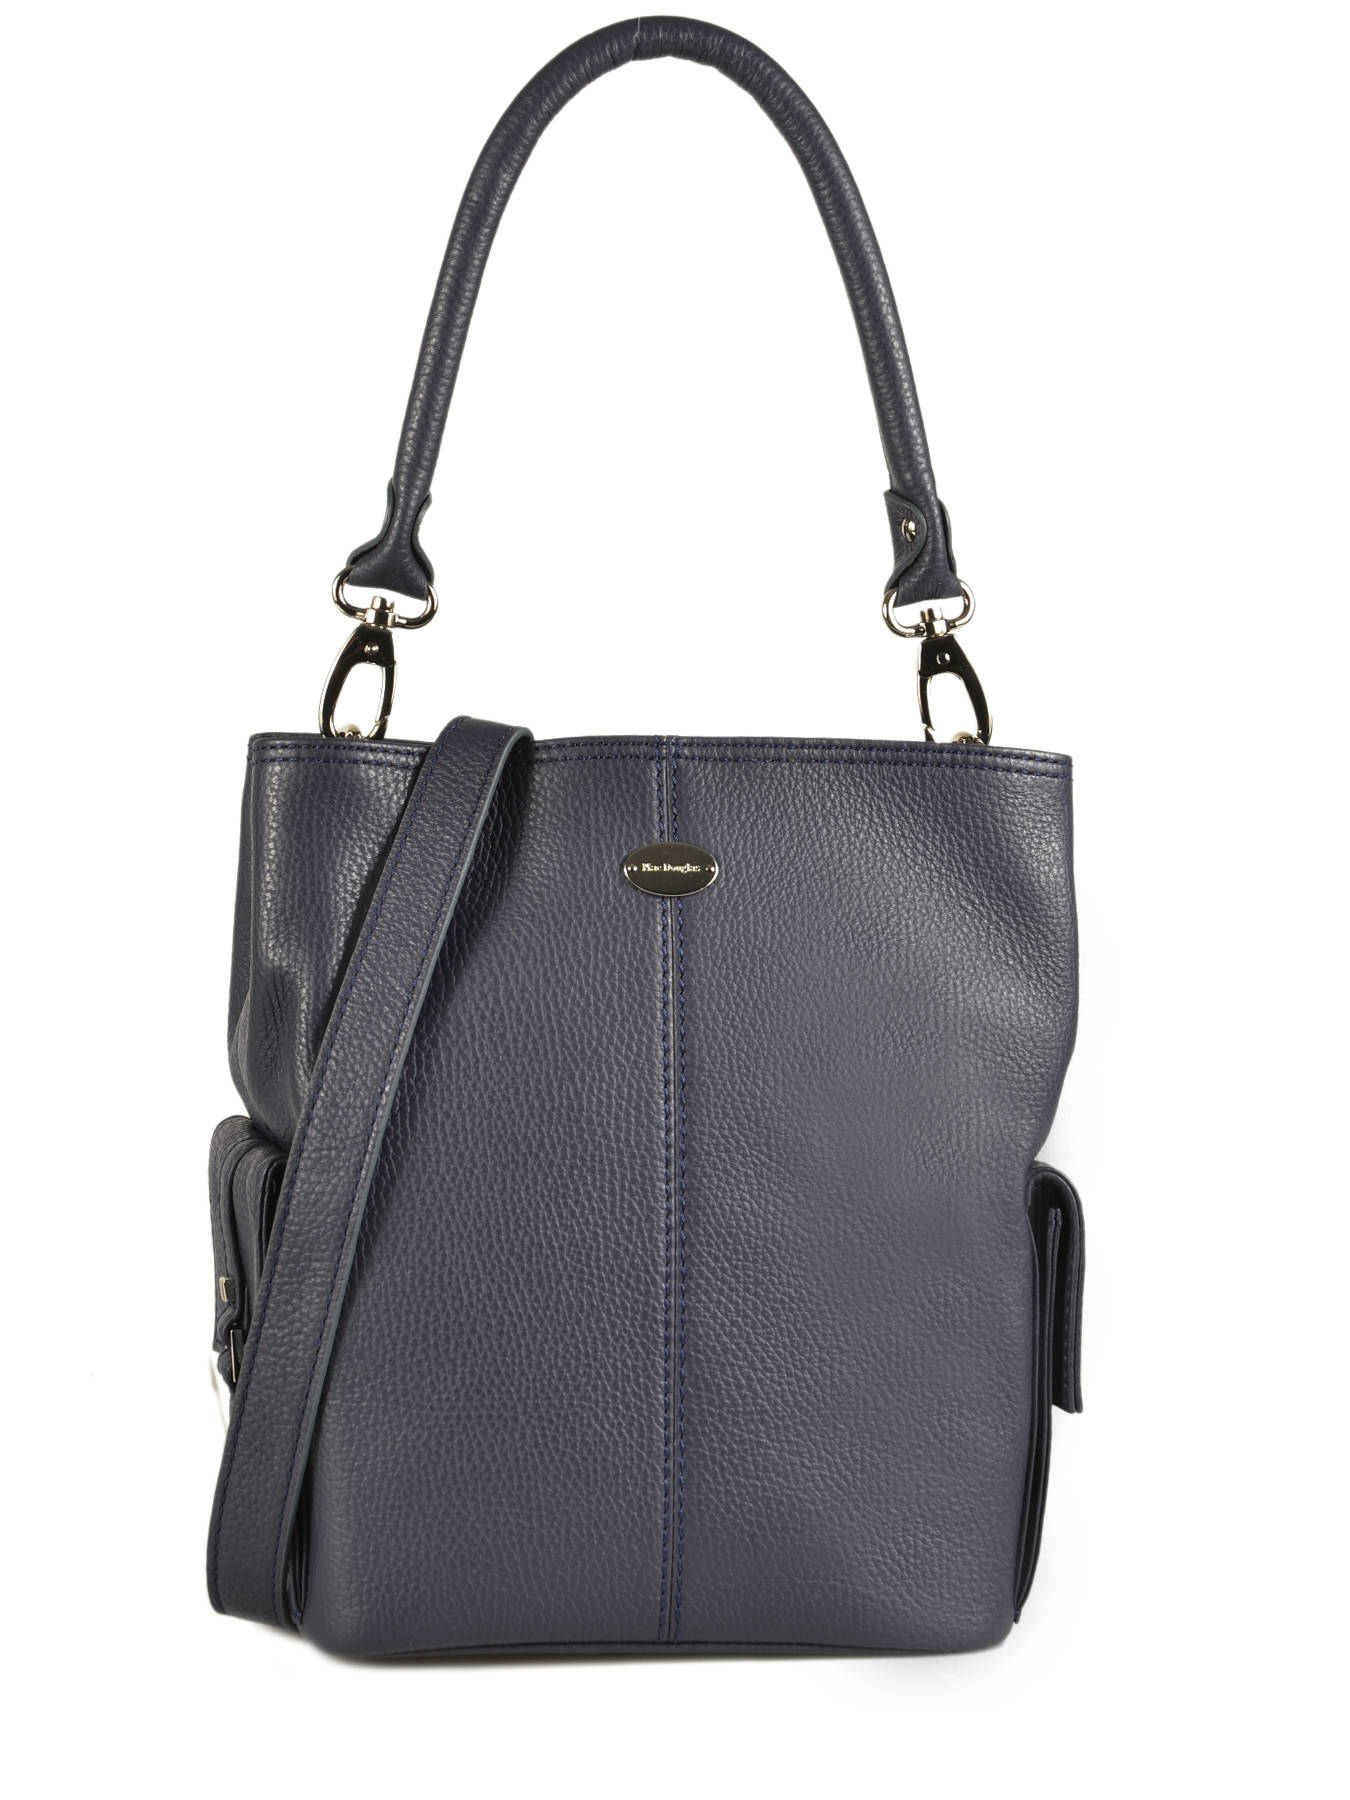 Bucket Bag Vesuvio Leather Mac douglas Blue vesuvio MEGVES-S